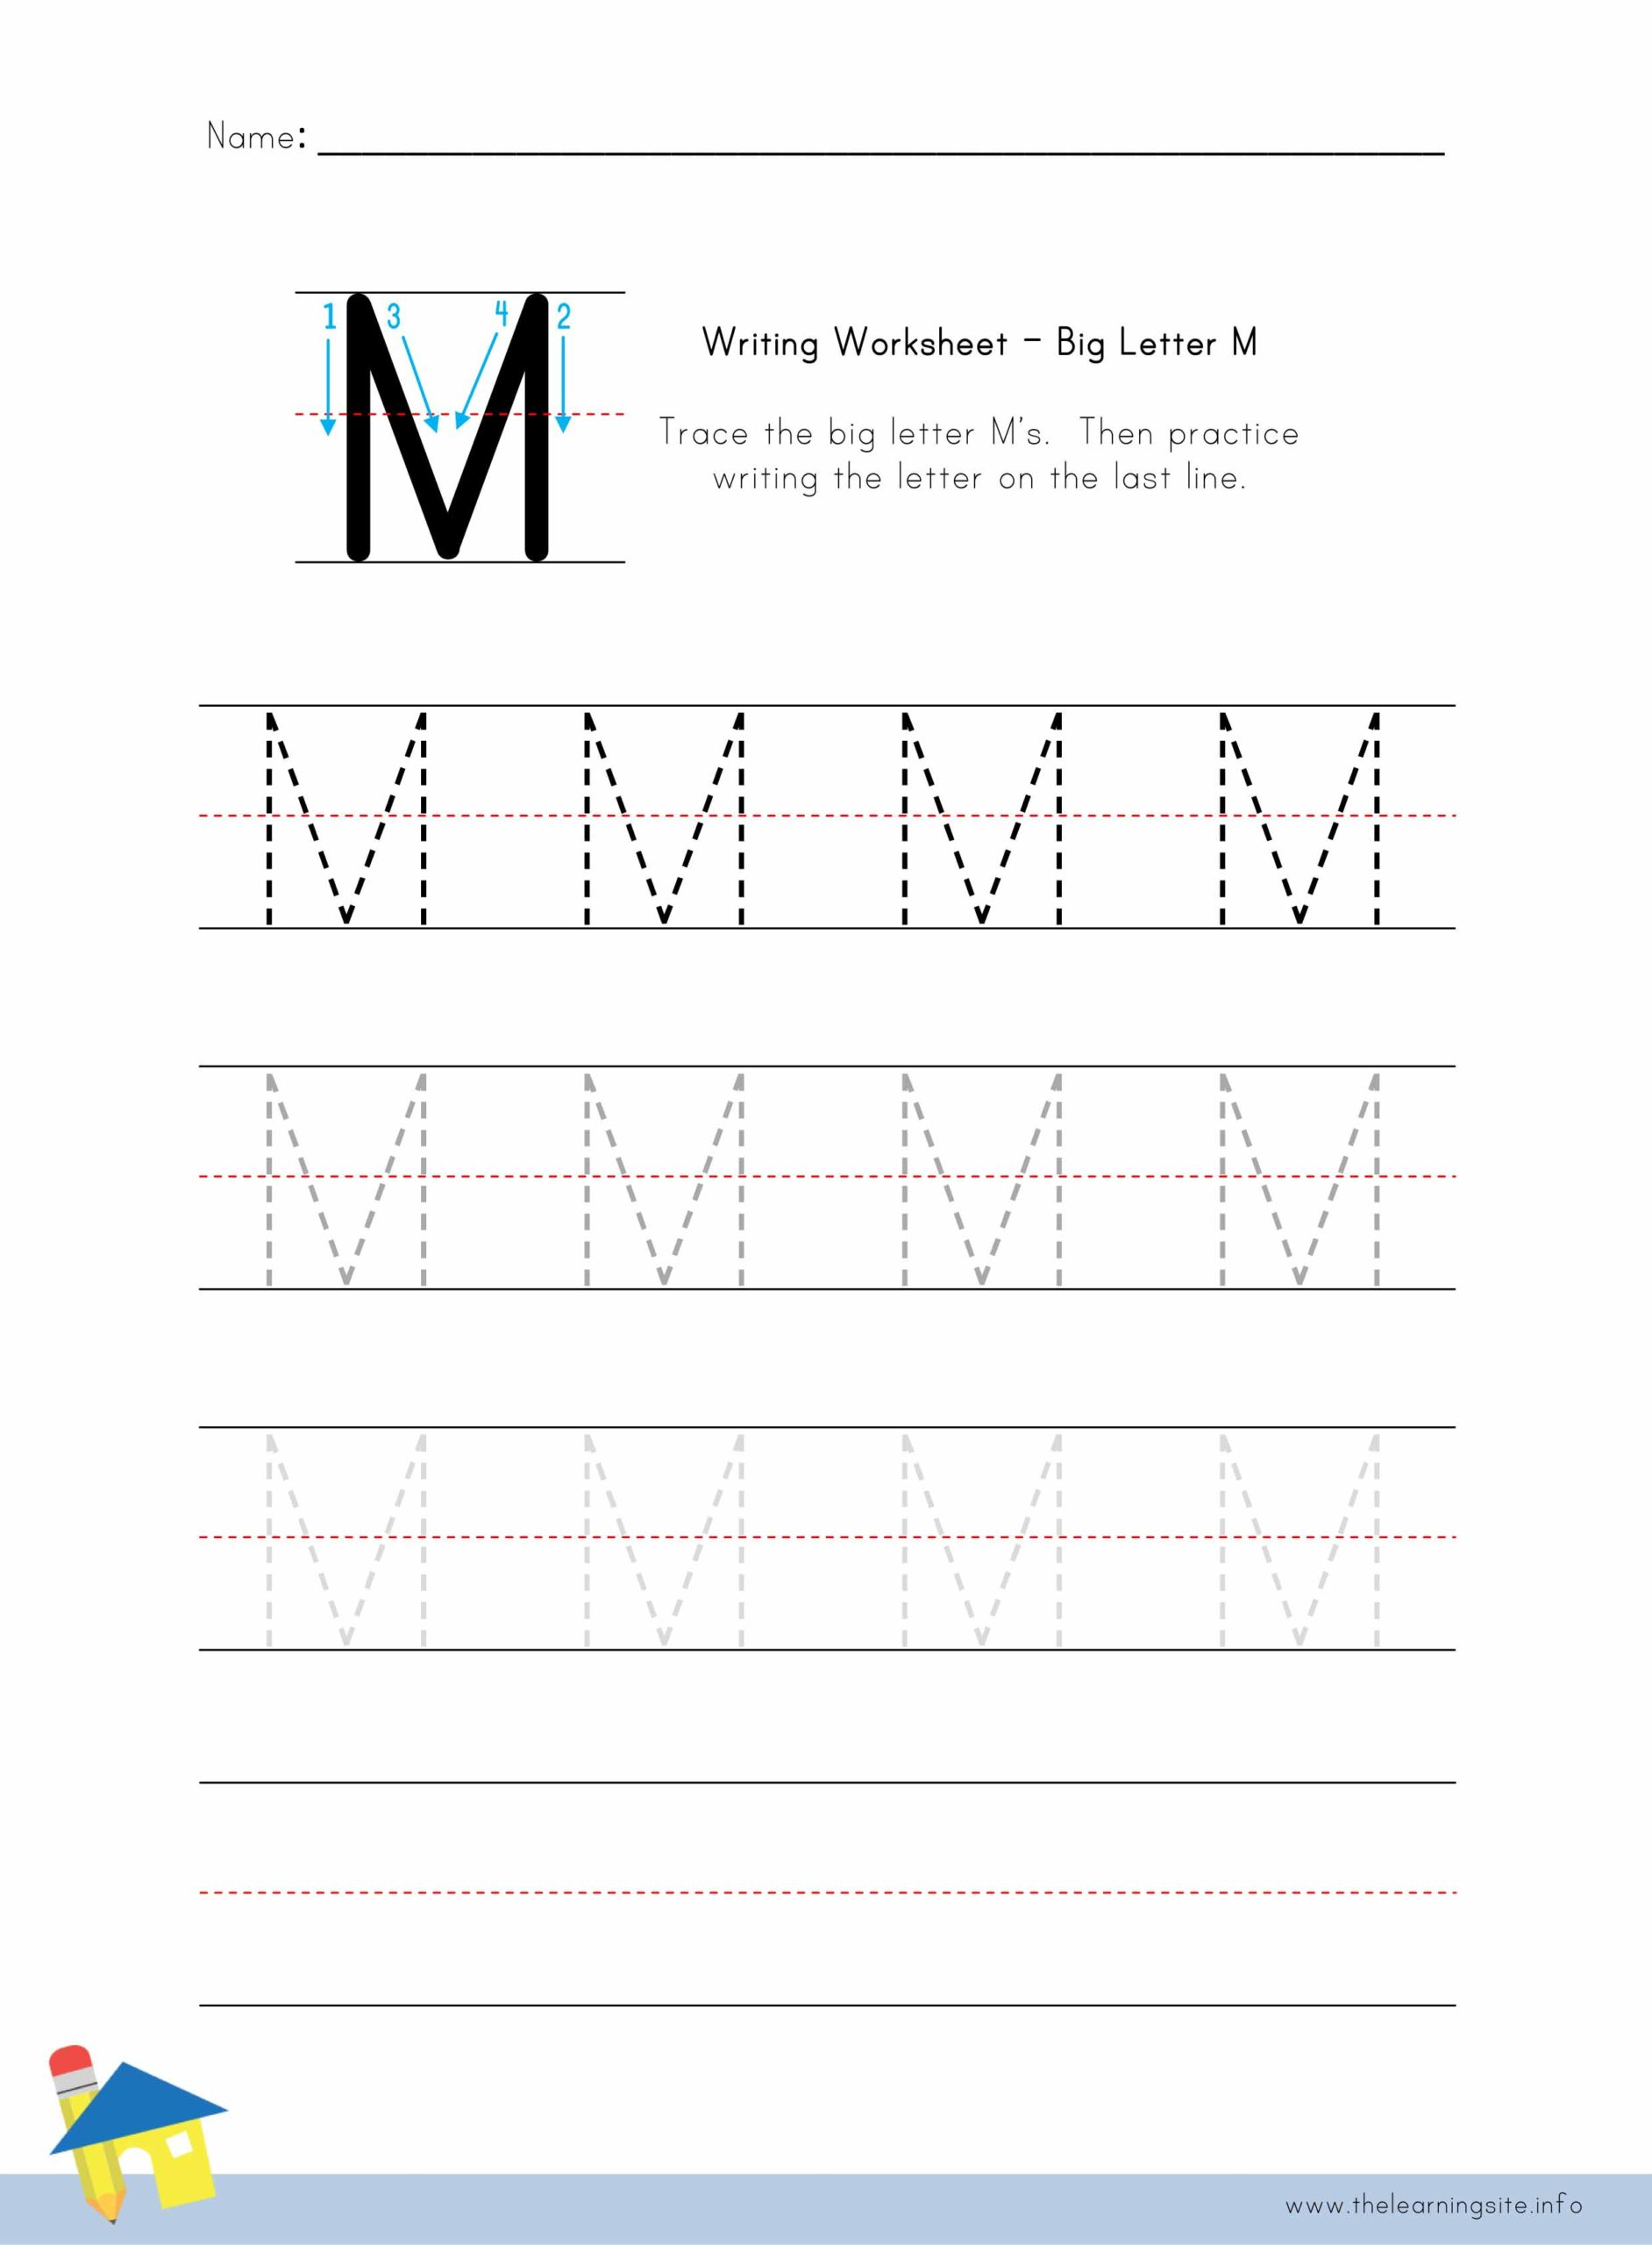 Big Letter M Writing Worksheet The Learning Site